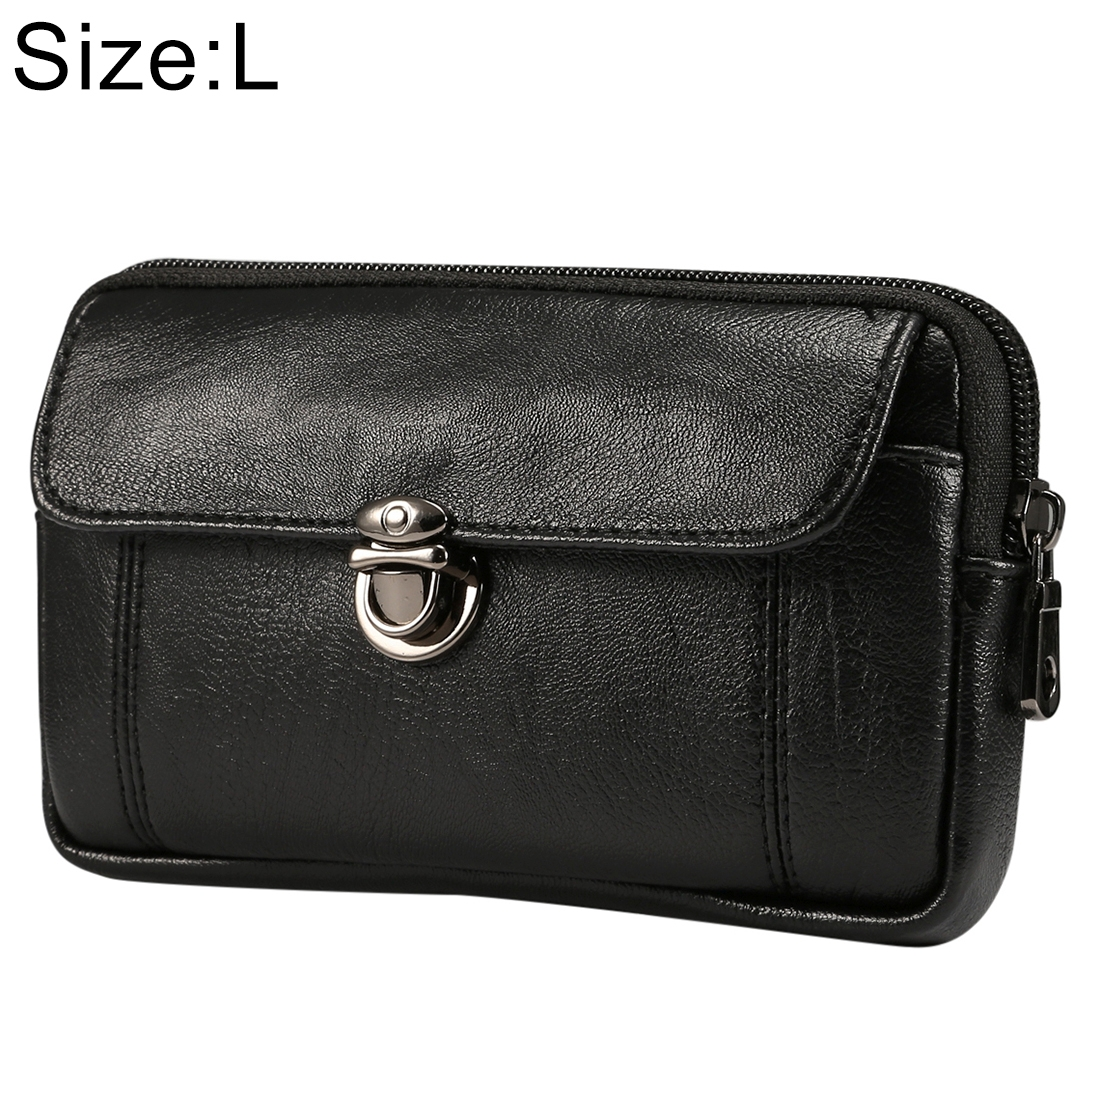 Men Litchi Texture PU Universal Phone Horizontal Waist Bag, Size: L, For iPhone, Samsung, Galaxy Note9, Huawei, Xiaomi, HTC, Sony, Lenovo and other 6.0~6.3 inch Smartphones (Black)